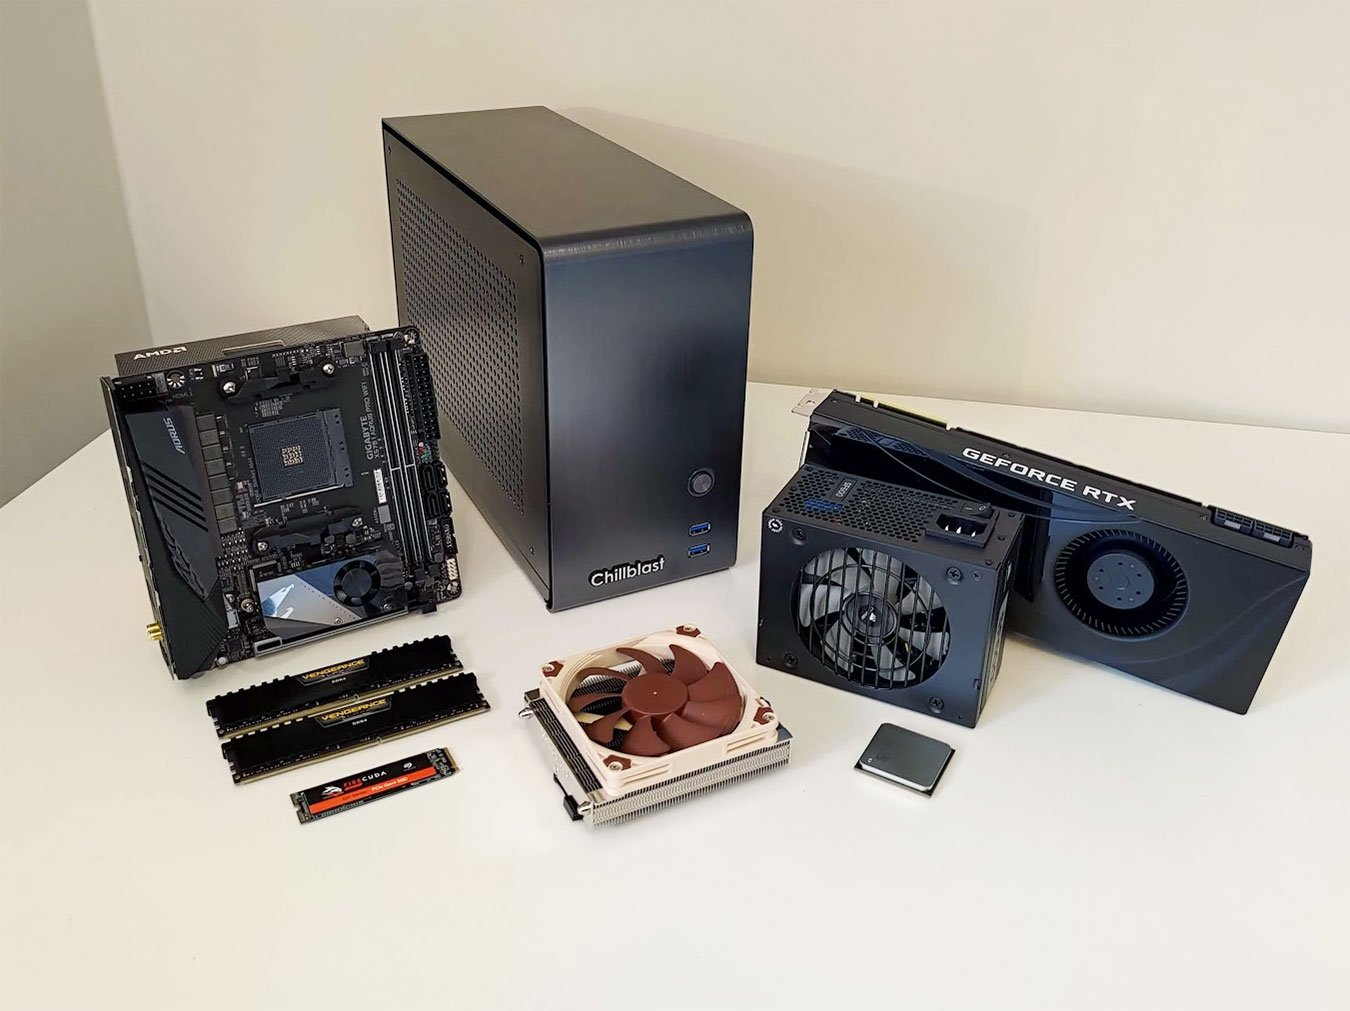 The Ultimate Small Form Factor PC - Components Unboxed